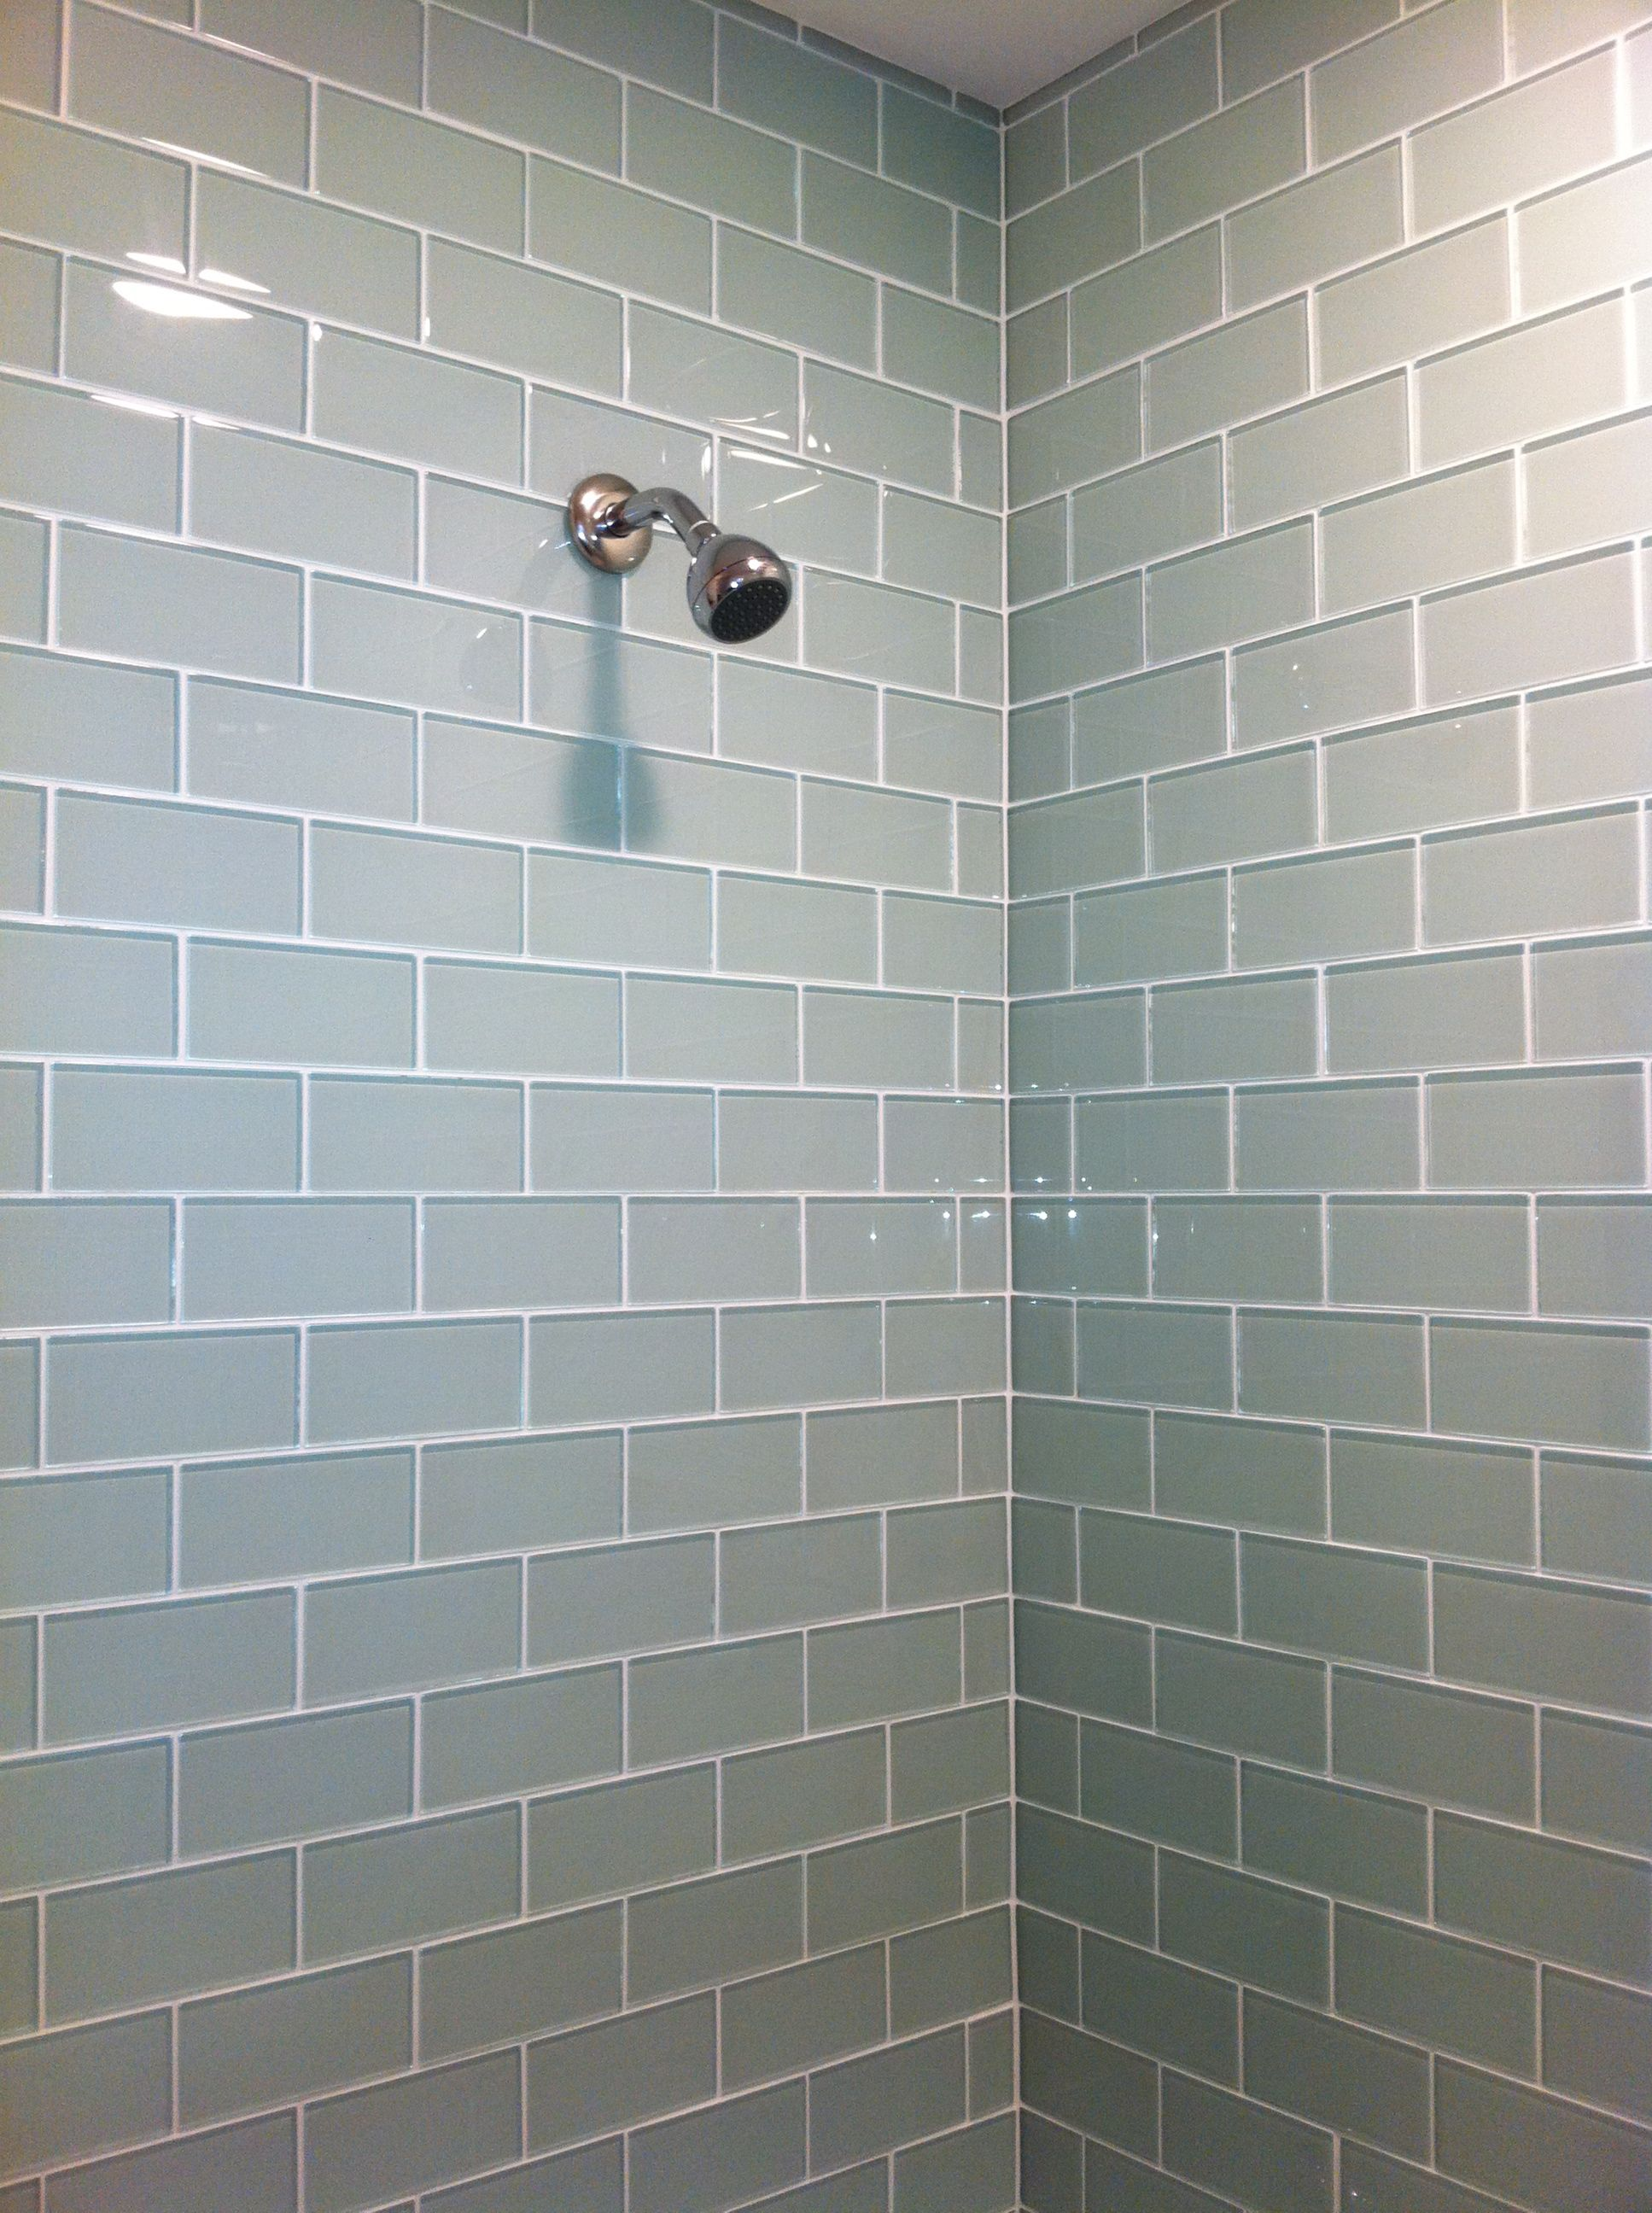 Decoration Interior Fashionable Grey Gl Subway Tiles With Wall Mount Chrome Head Shower Under Chic Design Bathroom